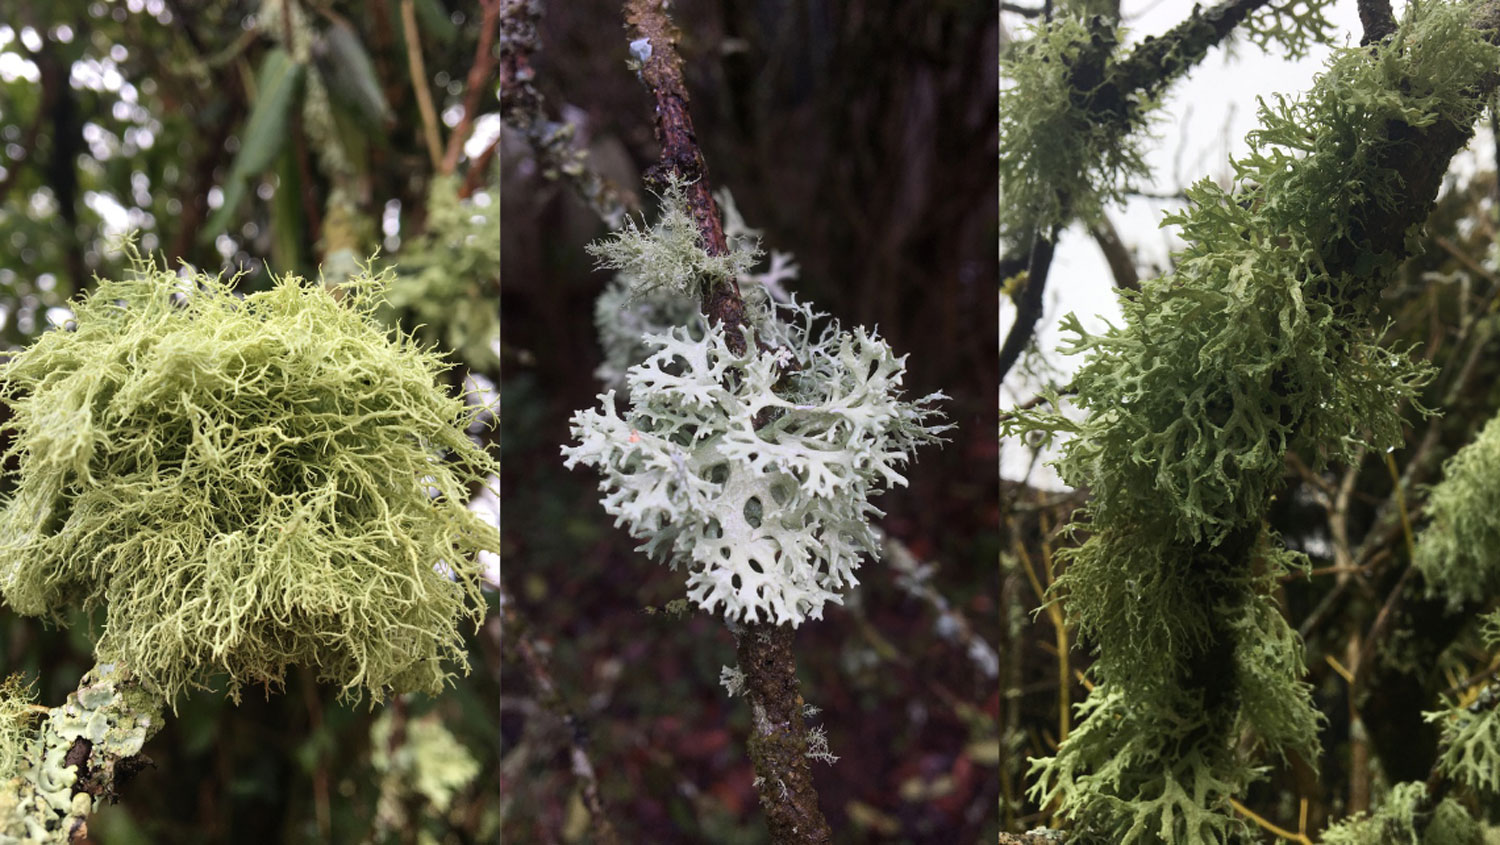 Three images of green spindly lichens